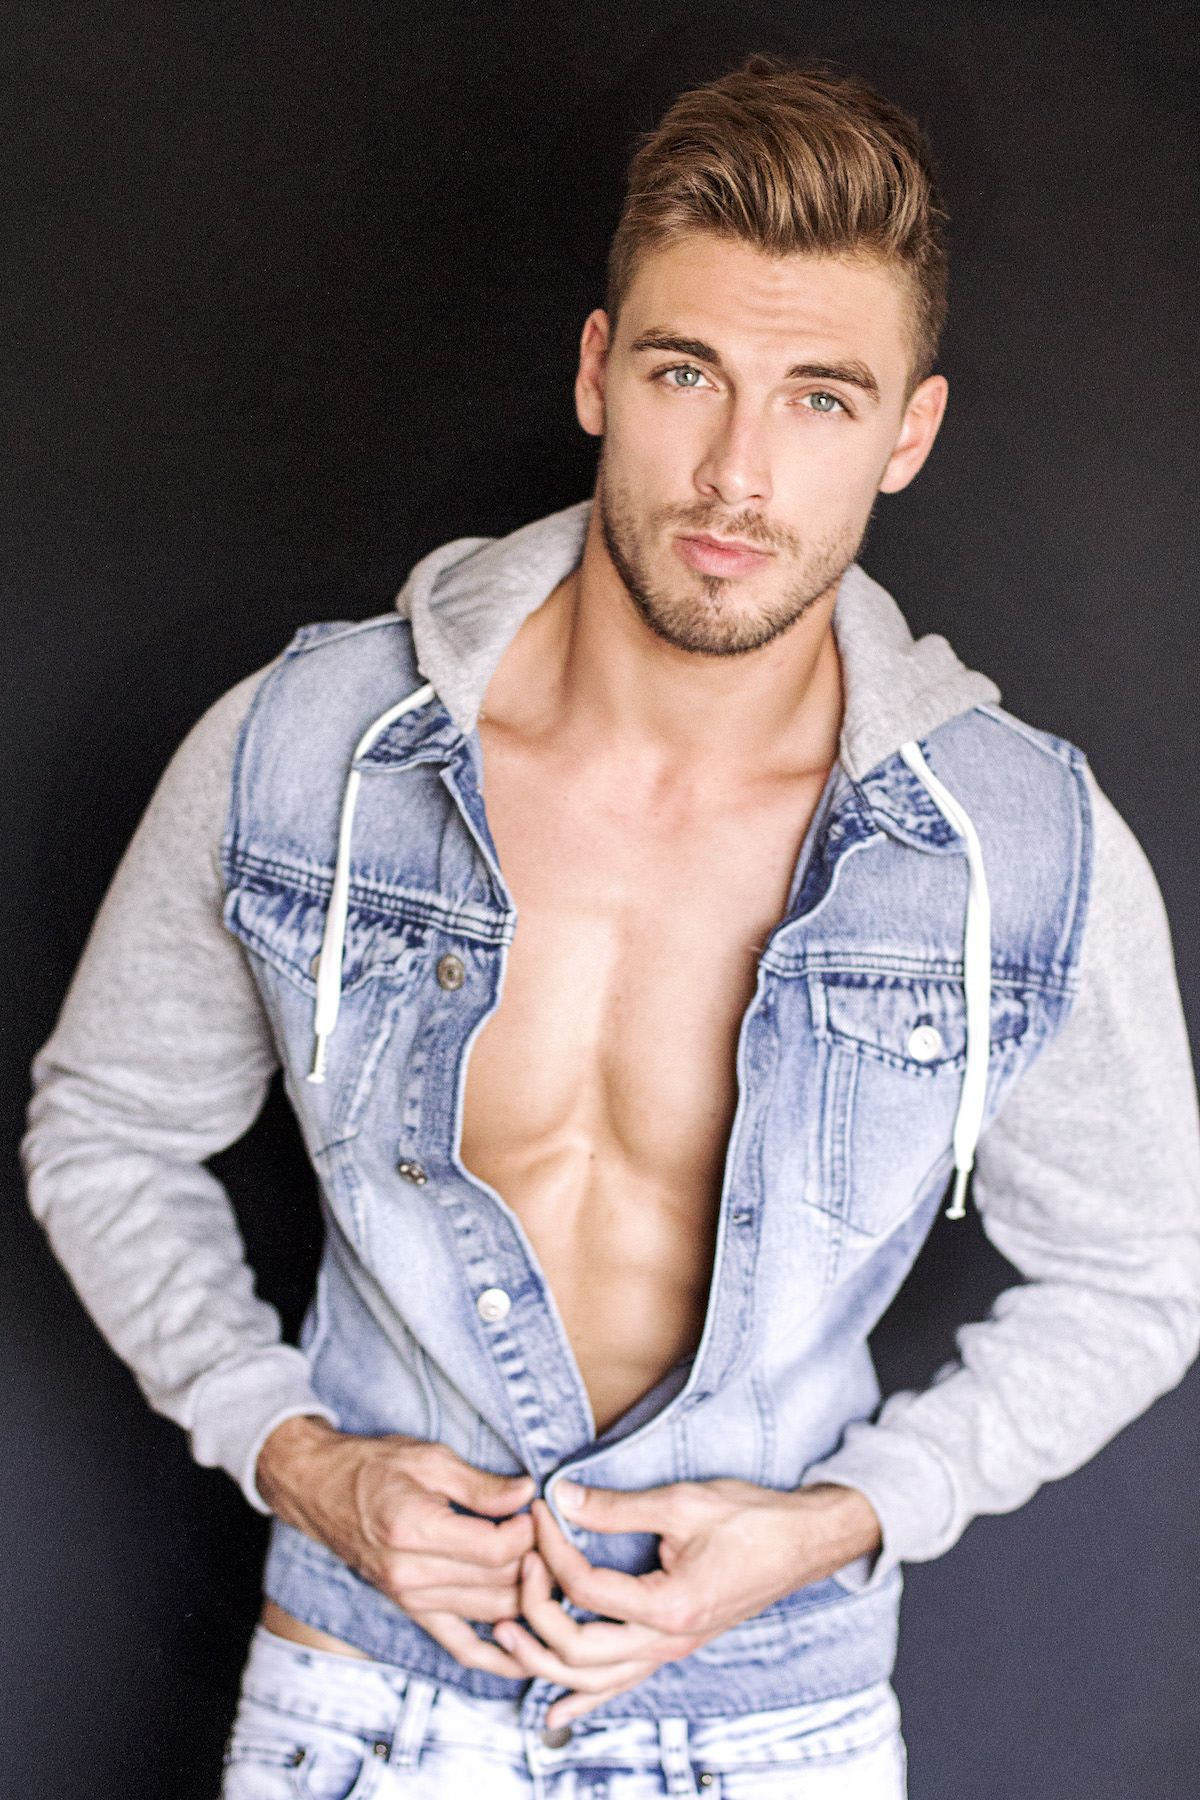 emerson single gay men B-gaycom is an exciting place for gay men max emerson has the cutest gay we have proudly been providing our community with gay chat & dating services, gay.